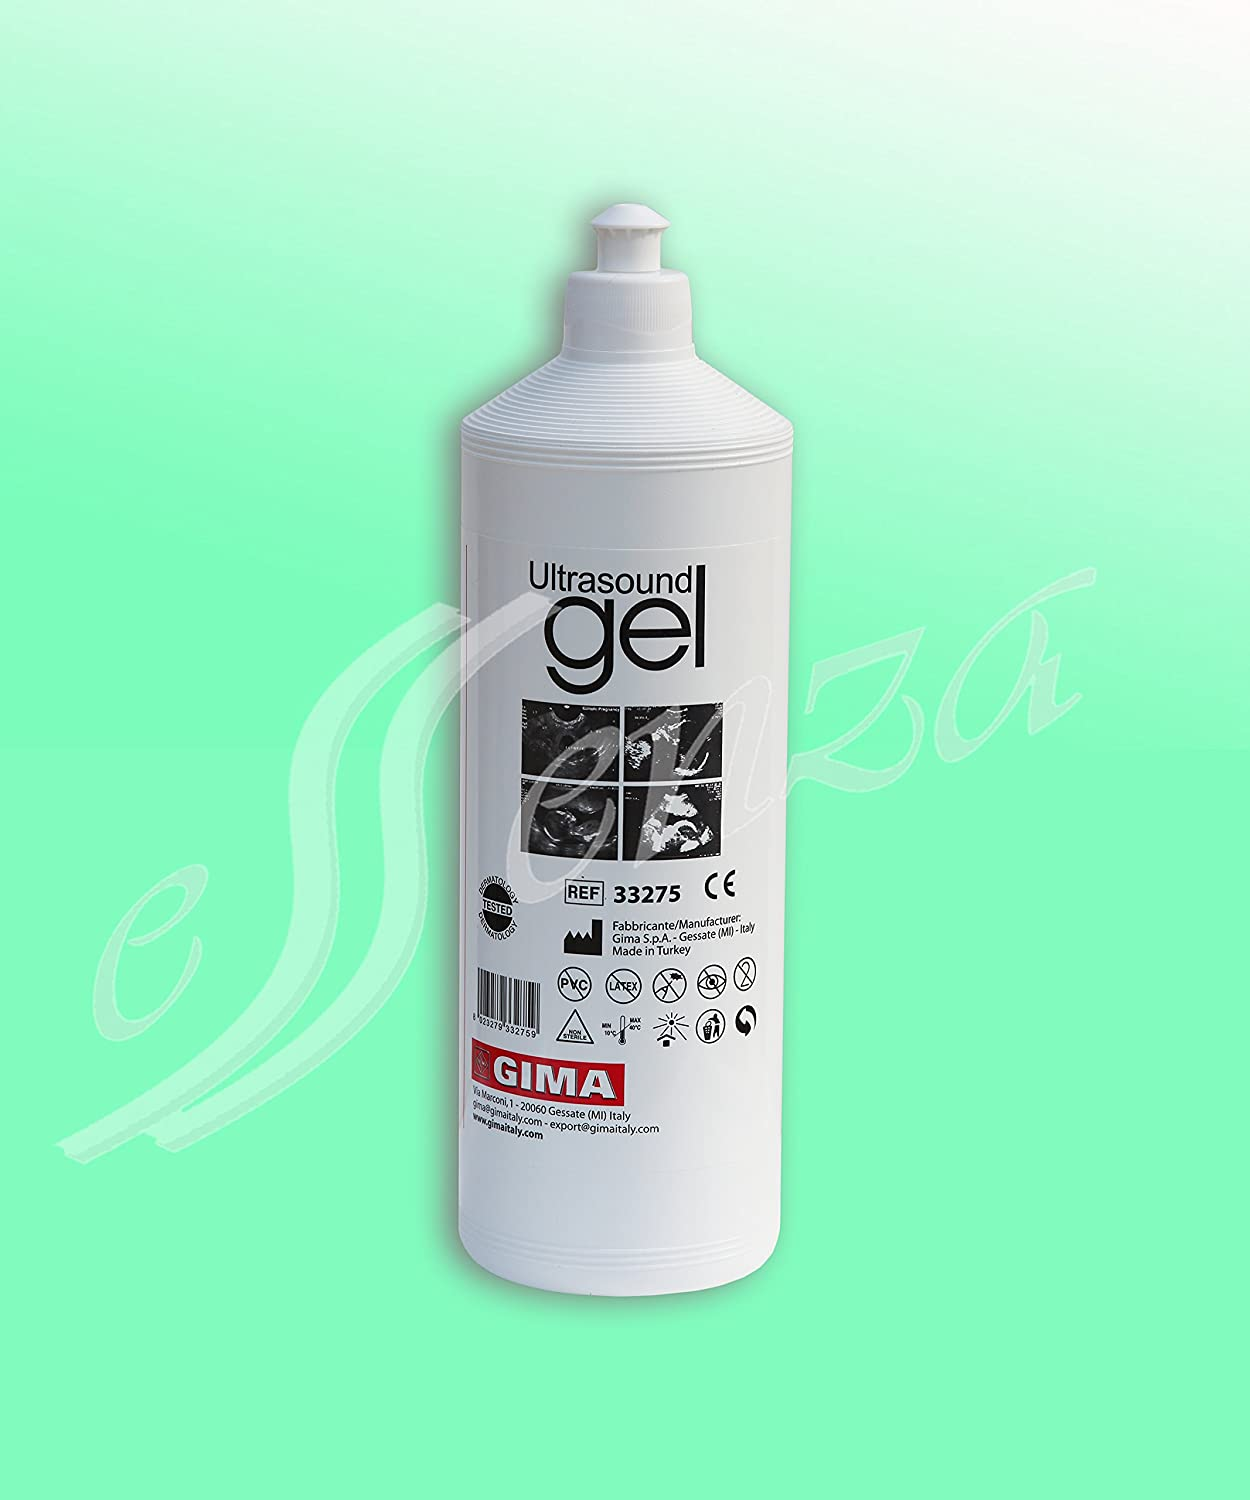 Gima 33275 Gel ultrasonidos (Botella 1 Litro, transparente para ...